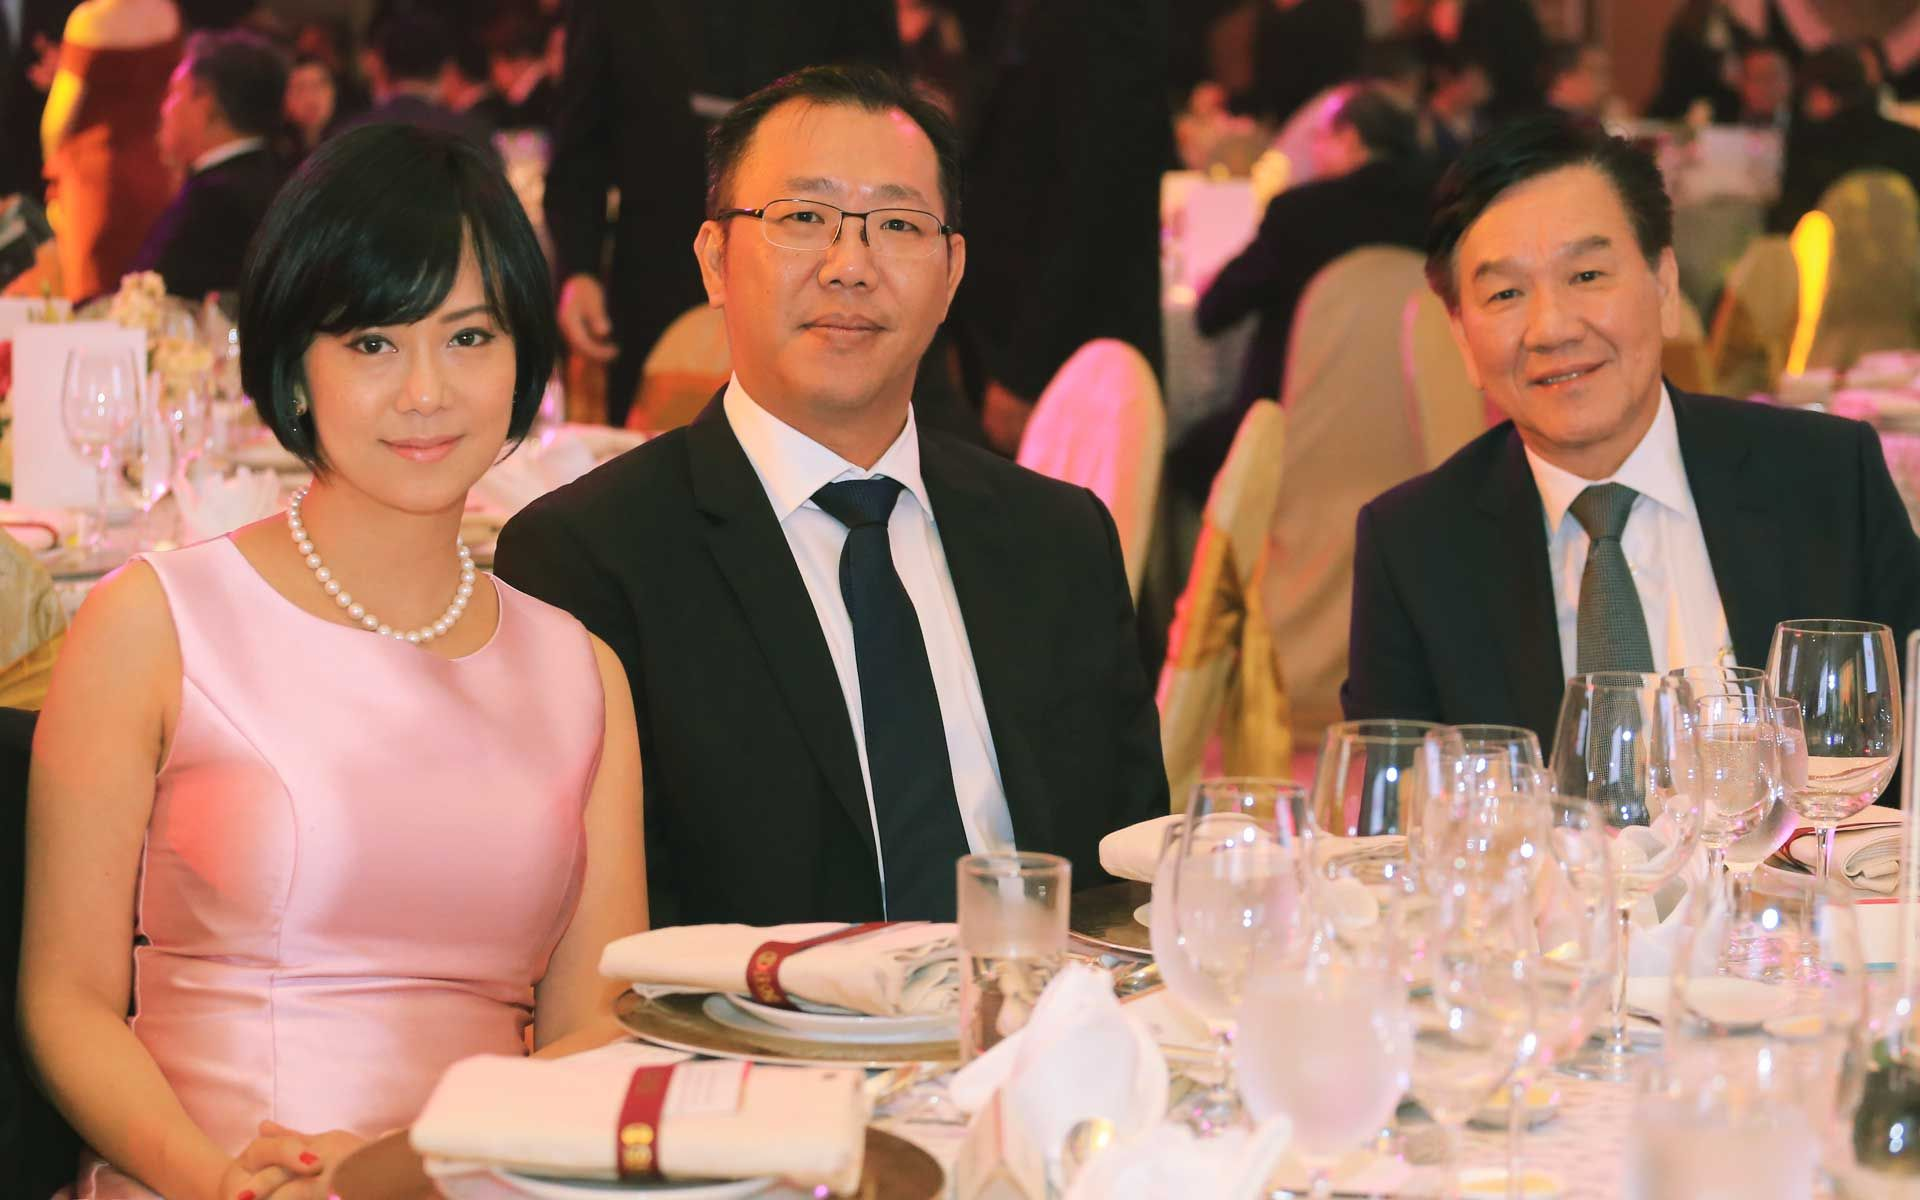 Katryn Yen, Dato' Seri William Chiang and SS Chiang